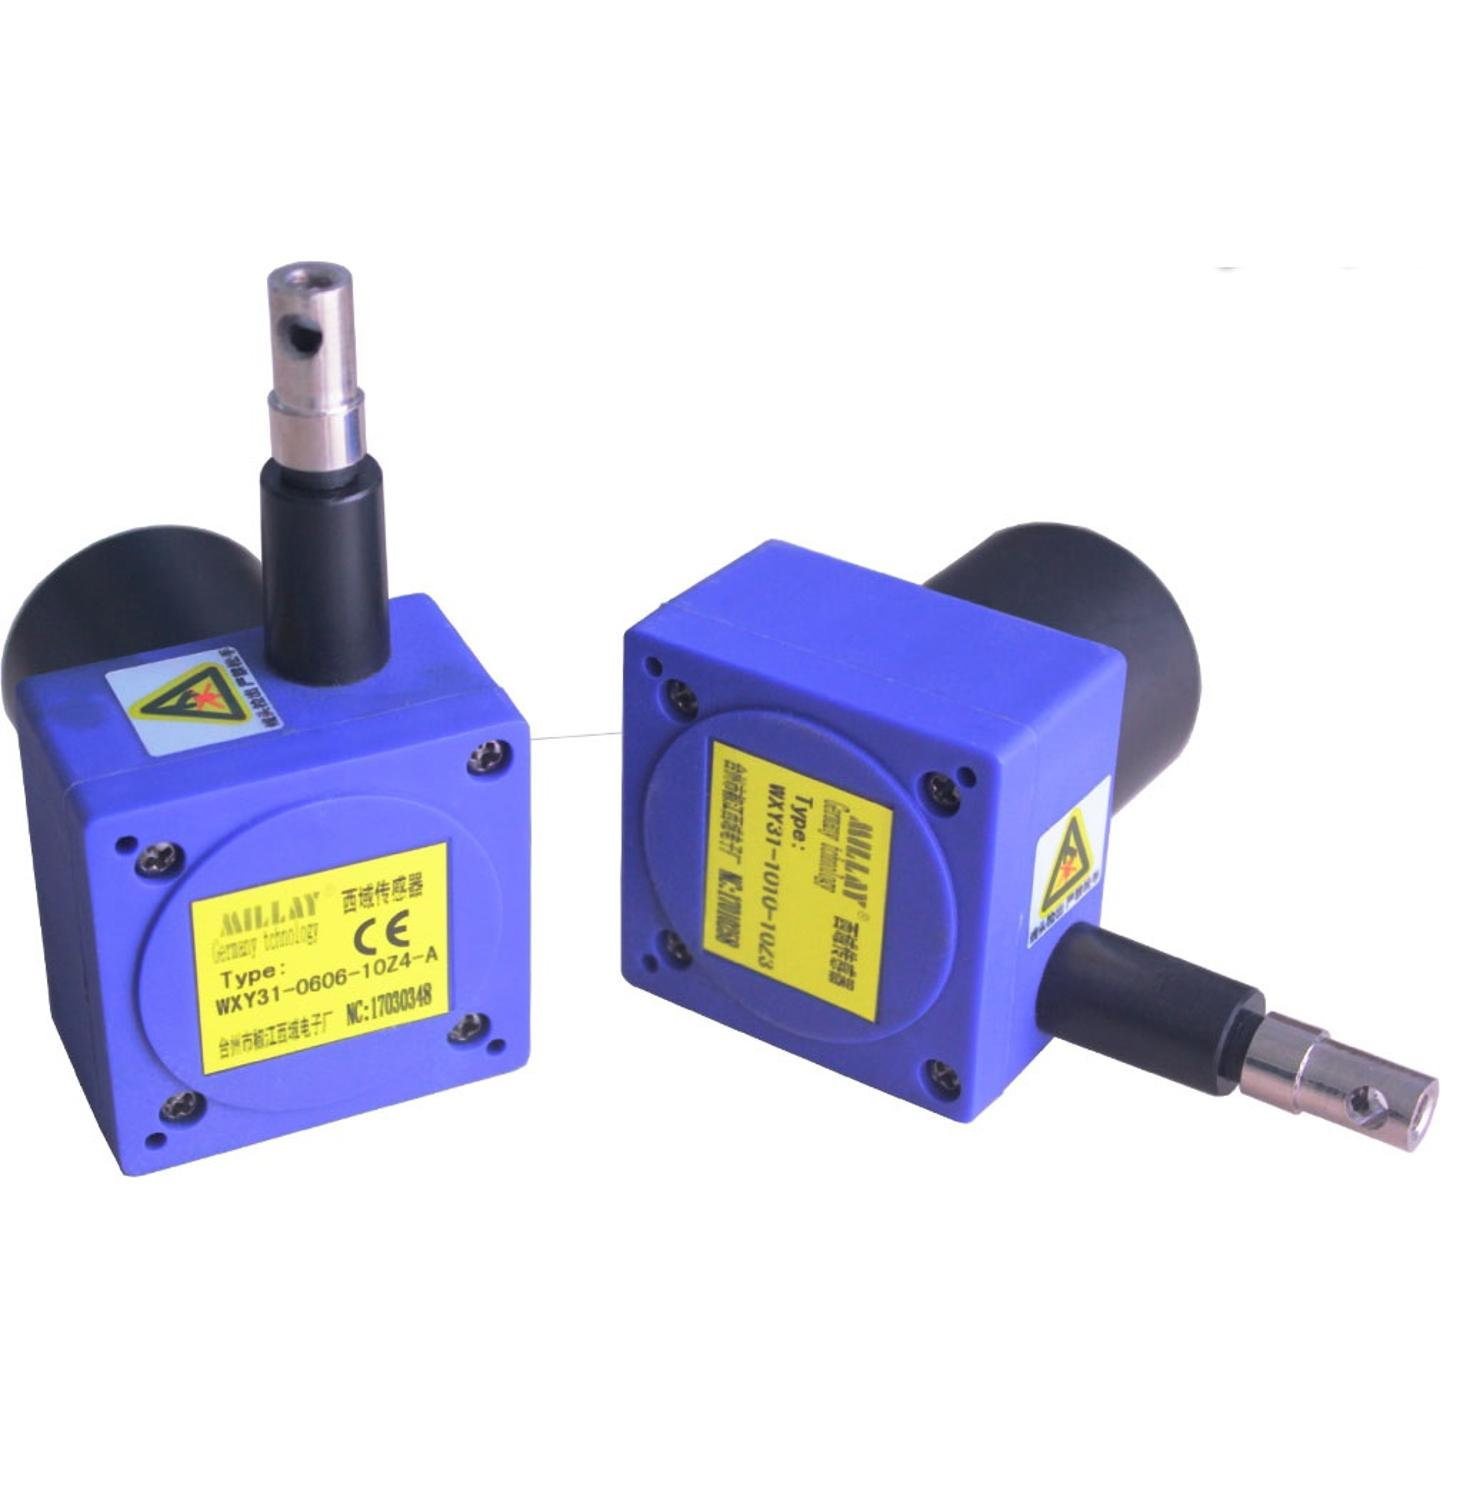 WXY31-1010 WXY80-L Gate Opening Instrument 4-20MA Cable Pull Rope Displacement Sensor Pulse Signal